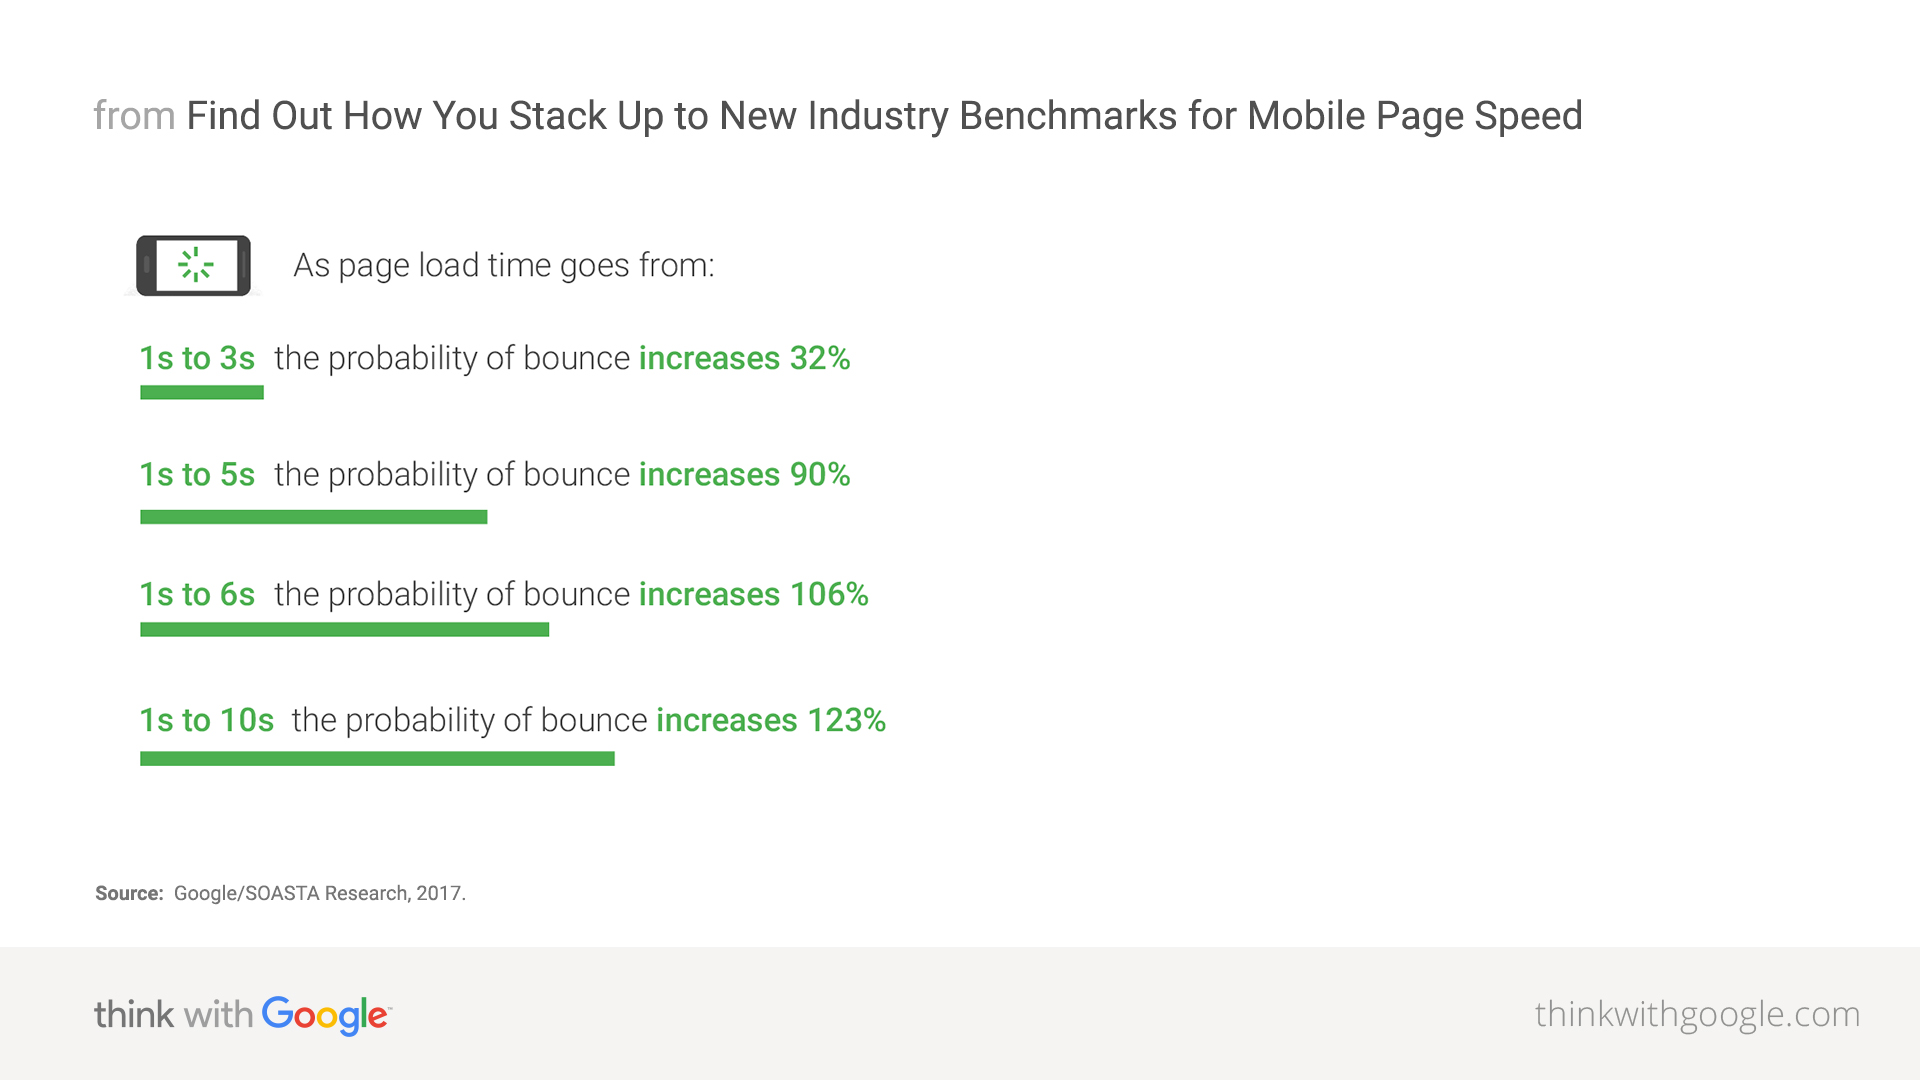 Google mobile page speed benchmarks